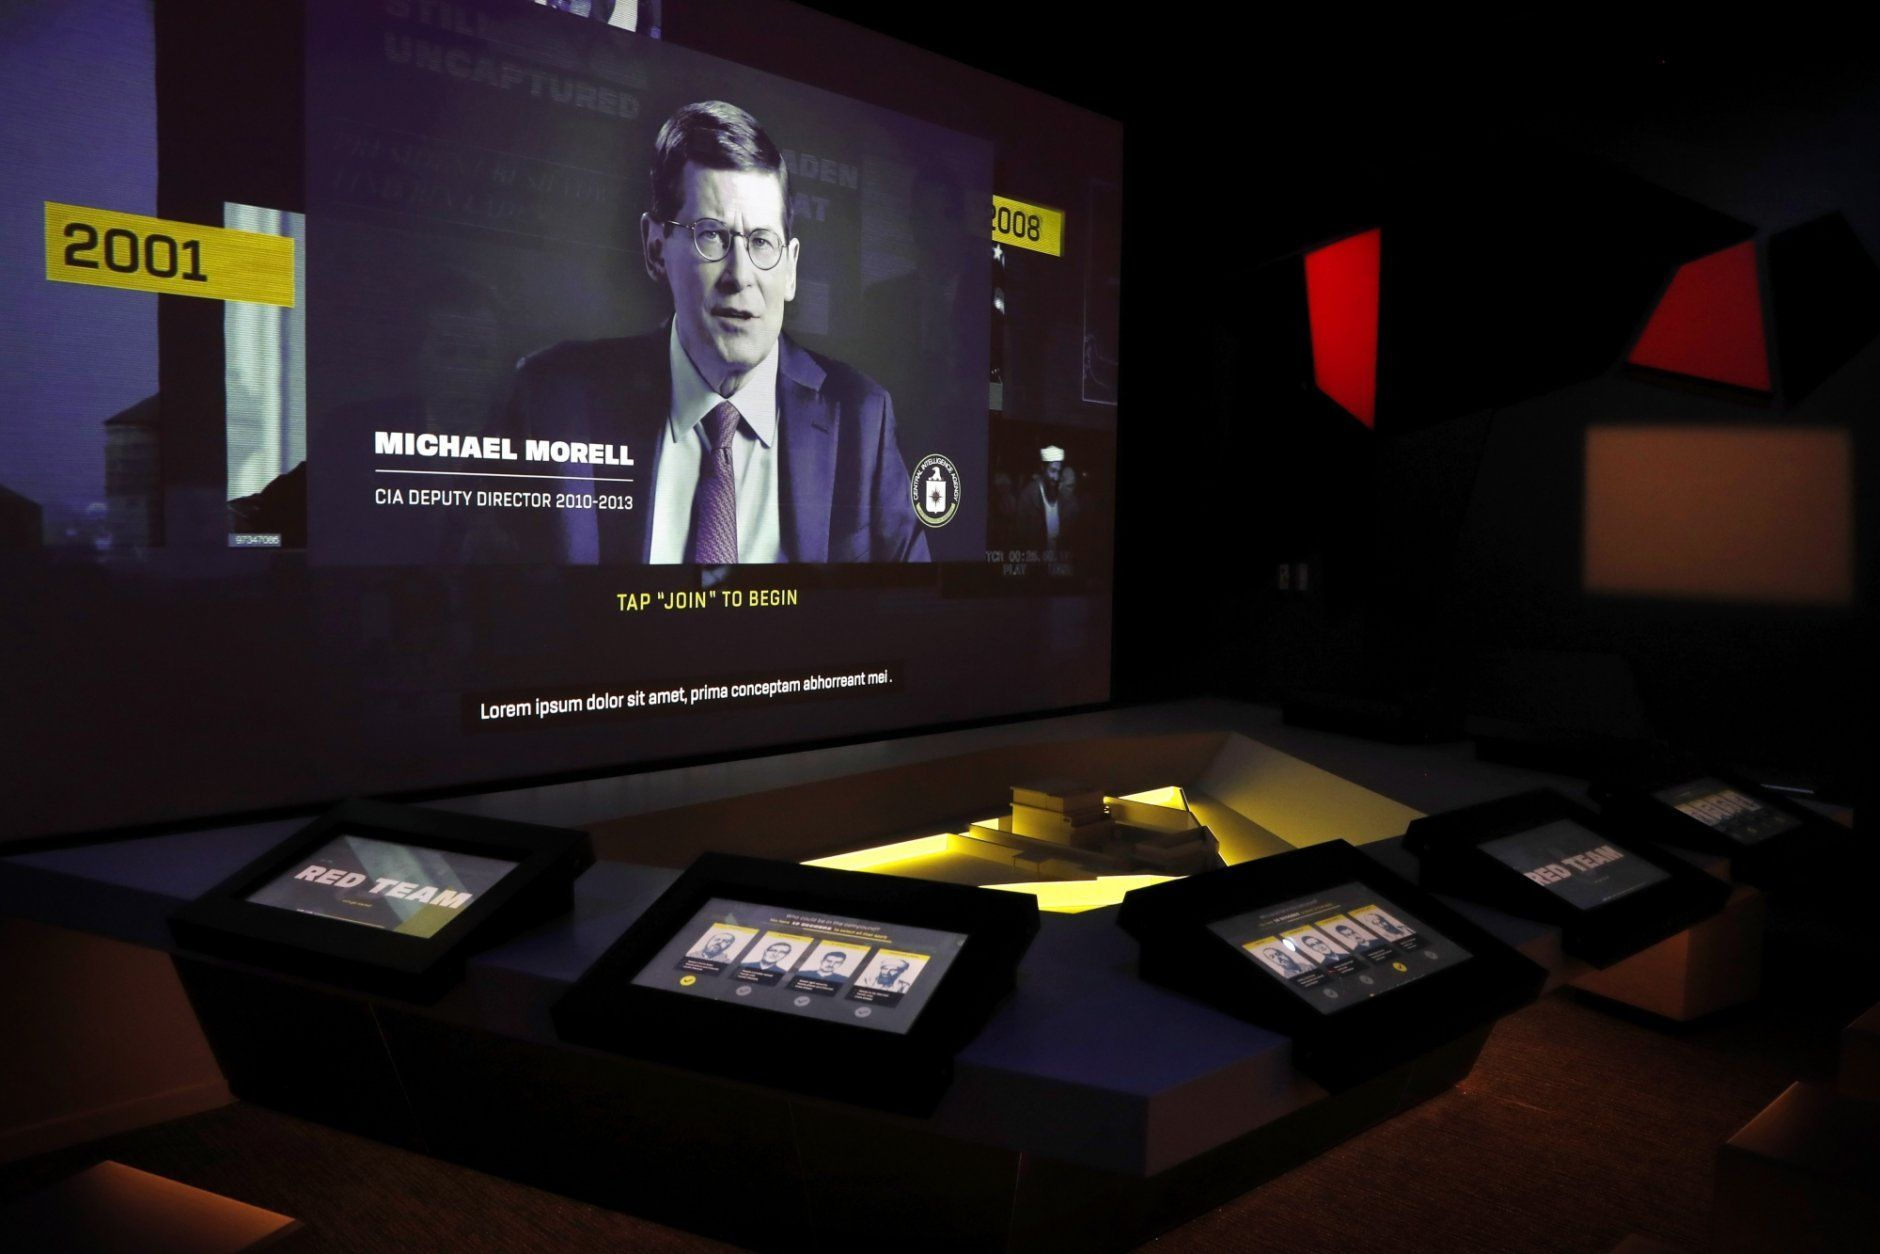 An interactive featuring a model of Osama bin Laden's compound in Abbottabad, Pakistan is among the exhibits at the new International Spy Museum, Tuesday April 30, 2019, in Washington. Take a back seat James Bond, because it's the stories of real-life spies that take center stage at the new International Spy Museum in Washington.  The expanded museum in its new building will open May 12. (AP Photo/Jacquelyn Martin)